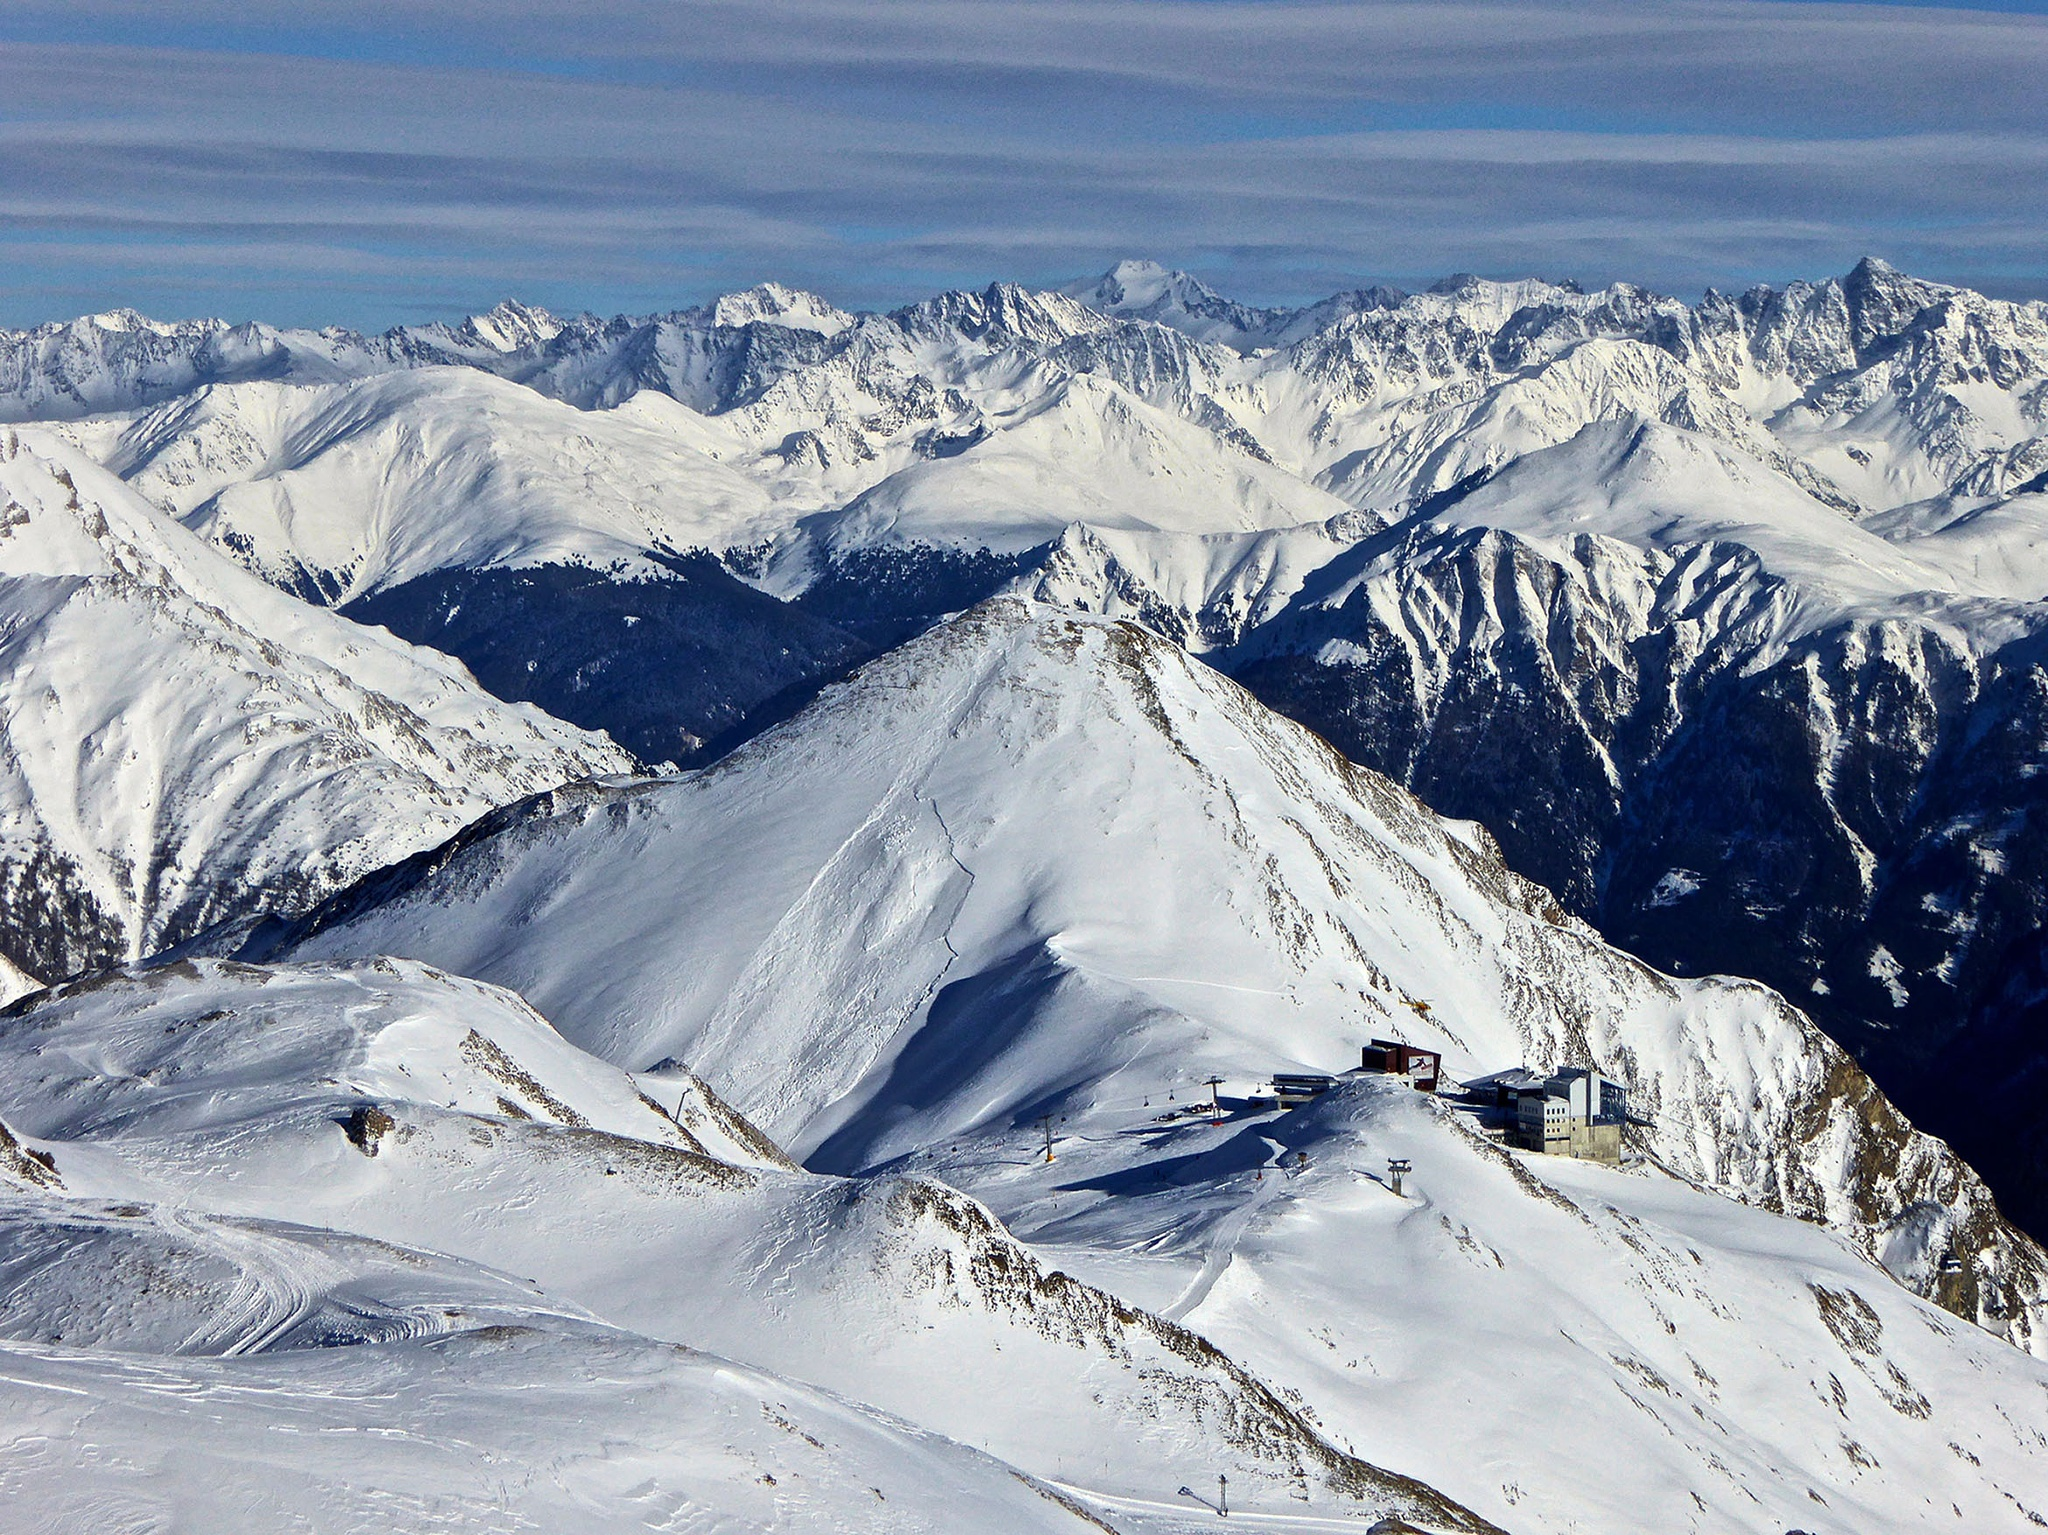 View from Greitspitz over the Skiarena of Samnaun and the Austrian mountains in the background by Erwin Widmer